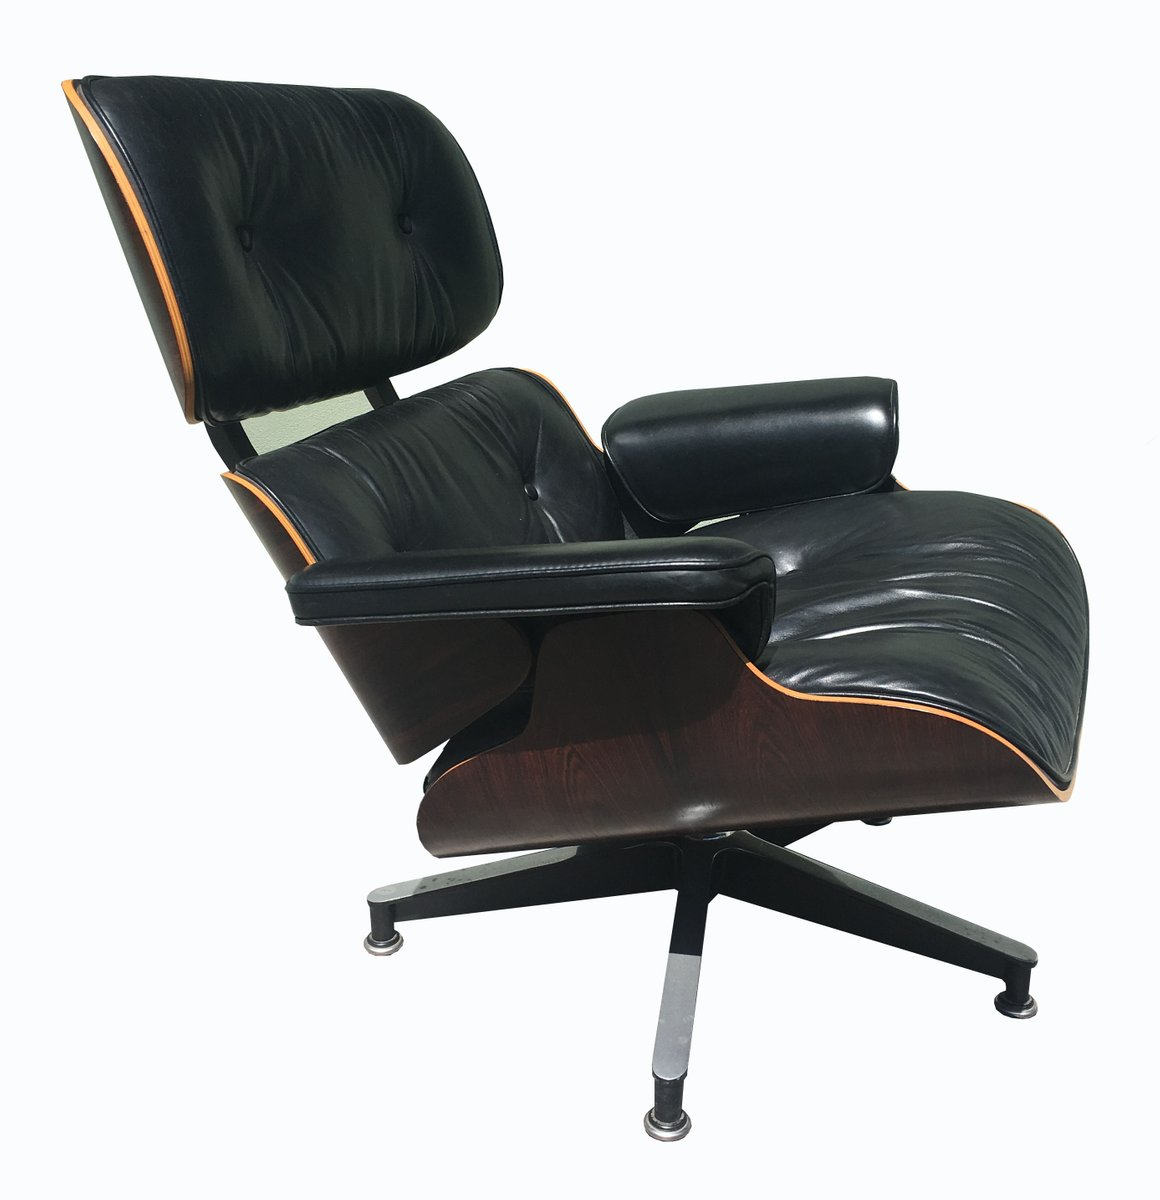 Charles Eames Lounge Chair 670 And 671 Lounge Chair And Ottoman By Charles And Ray Eames